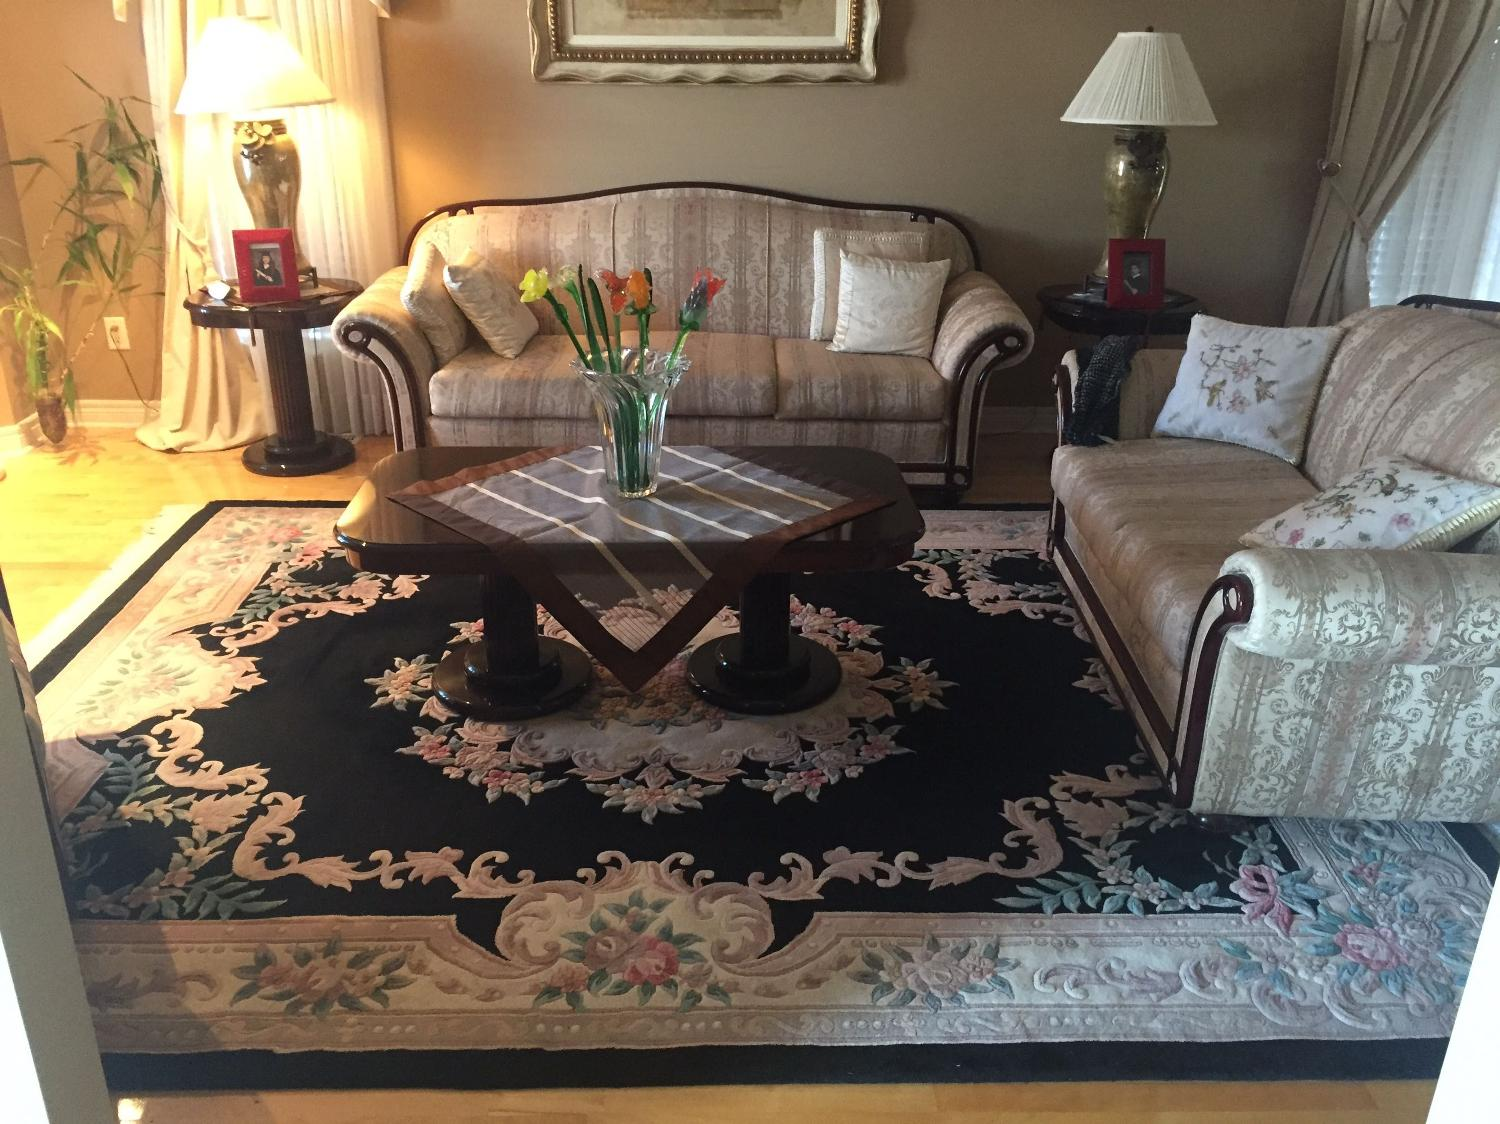 find more carpet rug 124 by 97 inches 10 5 feet by 8 feet for sale at up to 90 off. Black Bedroom Furniture Sets. Home Design Ideas